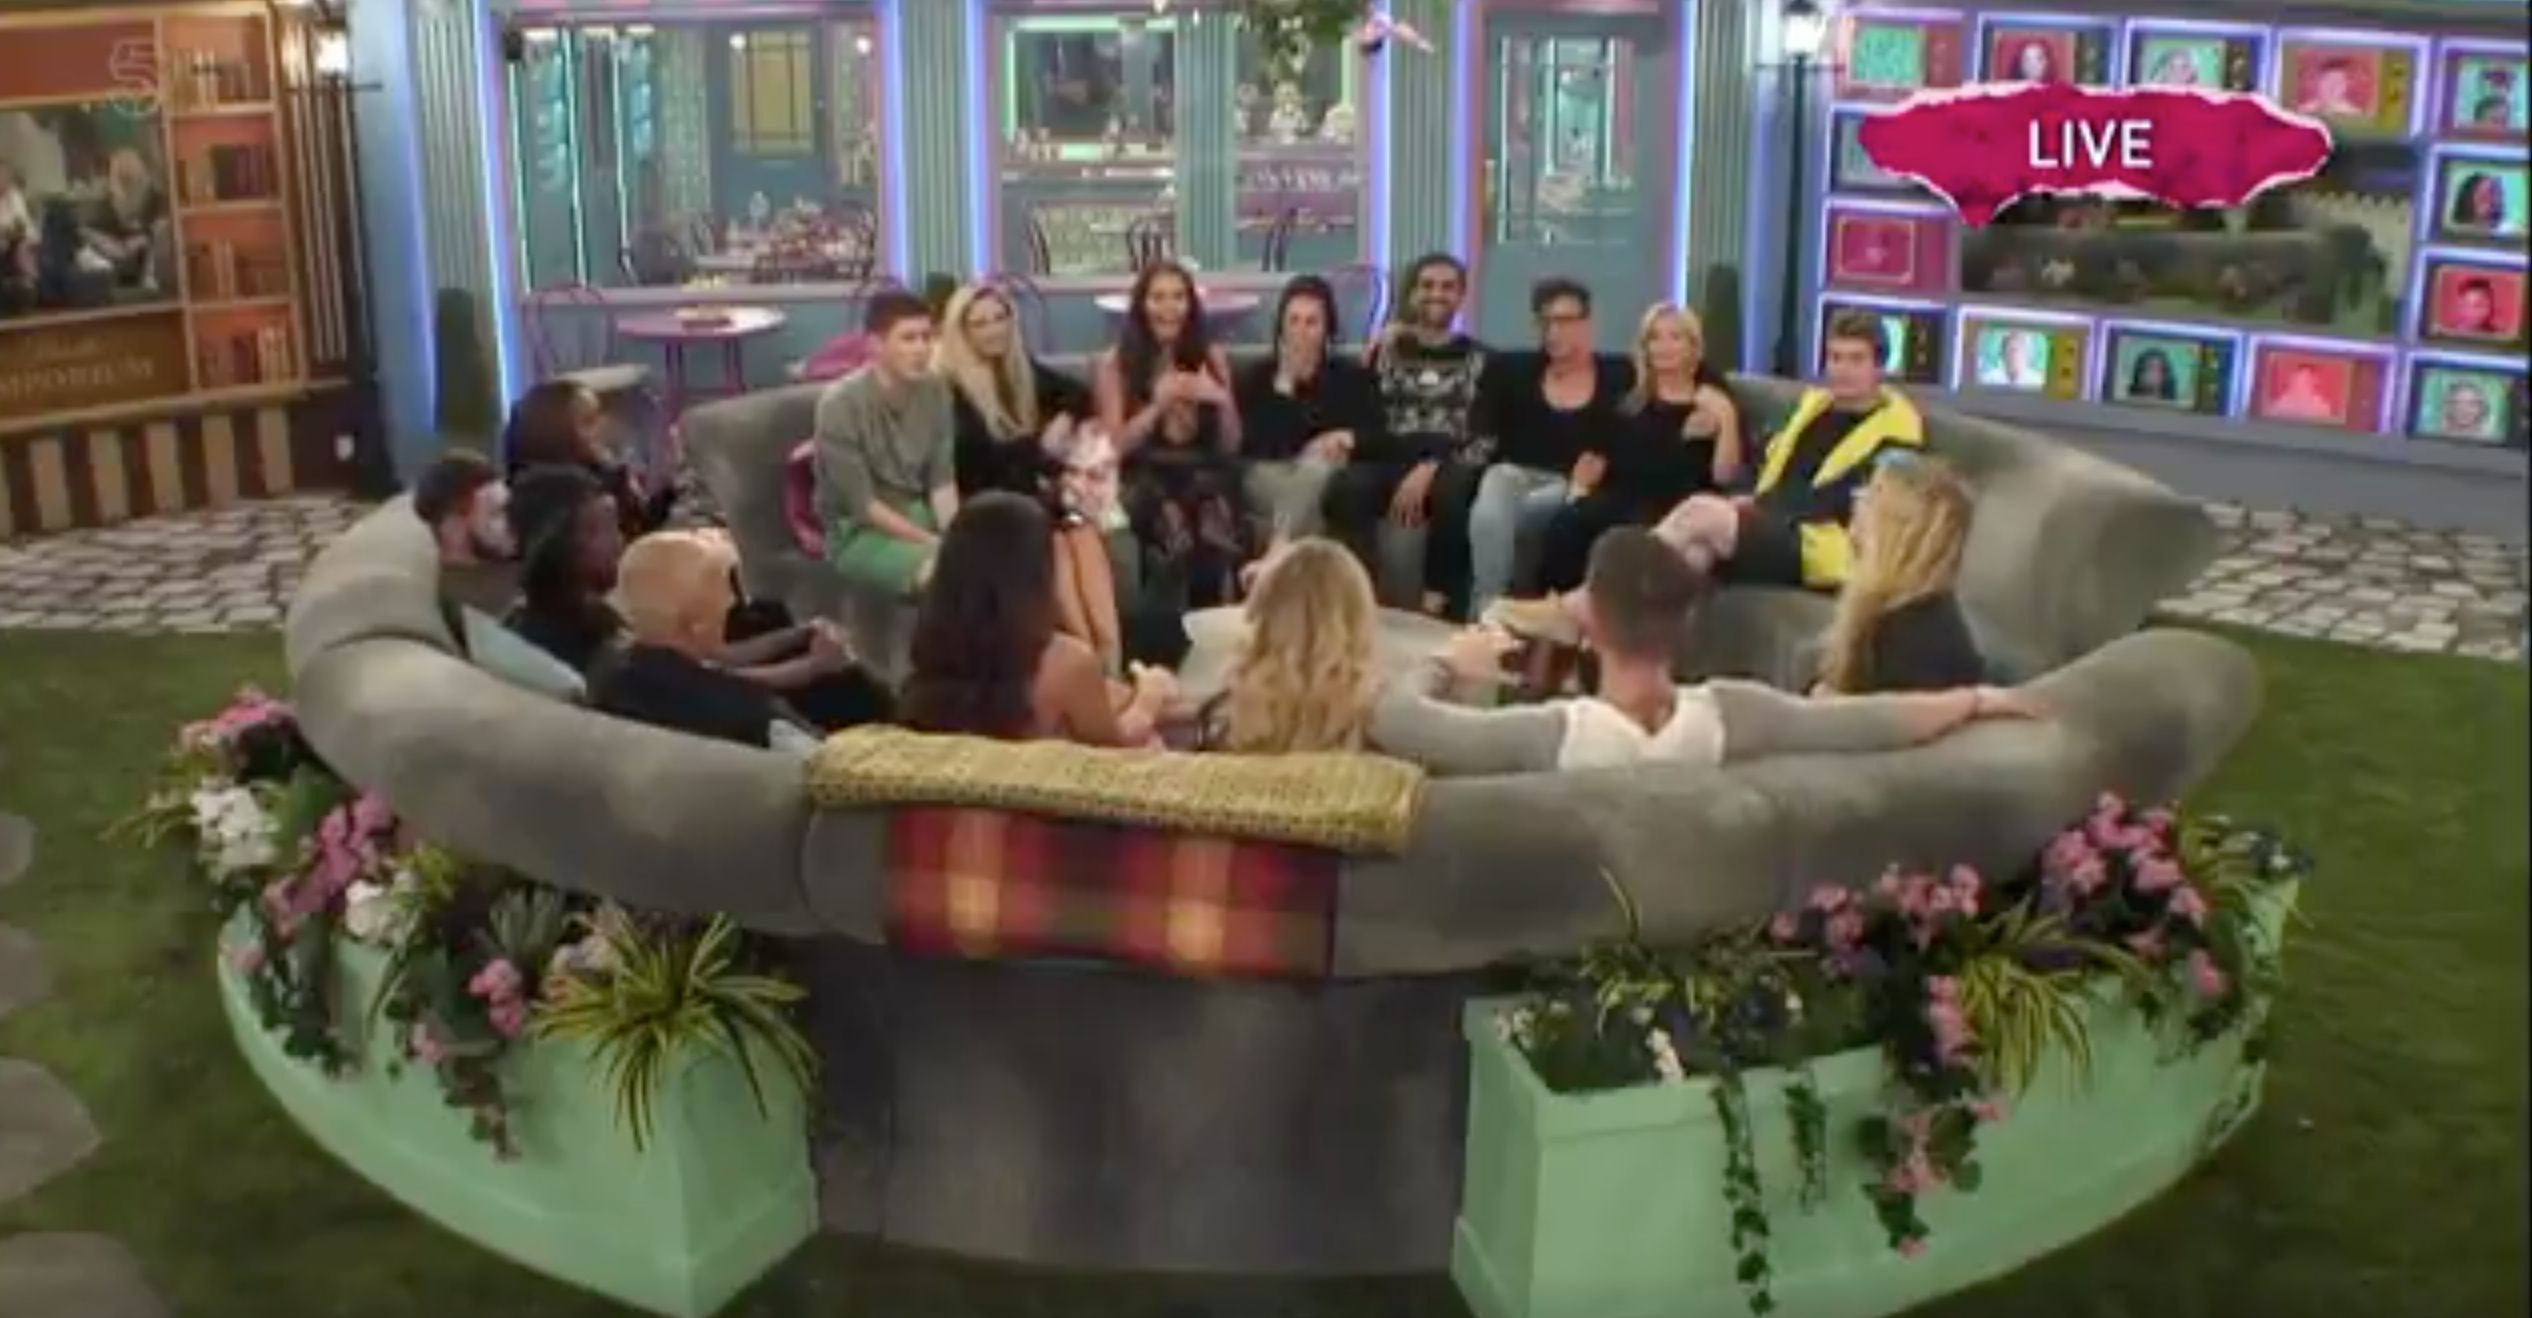 'Big Brother' Viewers Unimpressed As Housemates Learn Results Of General